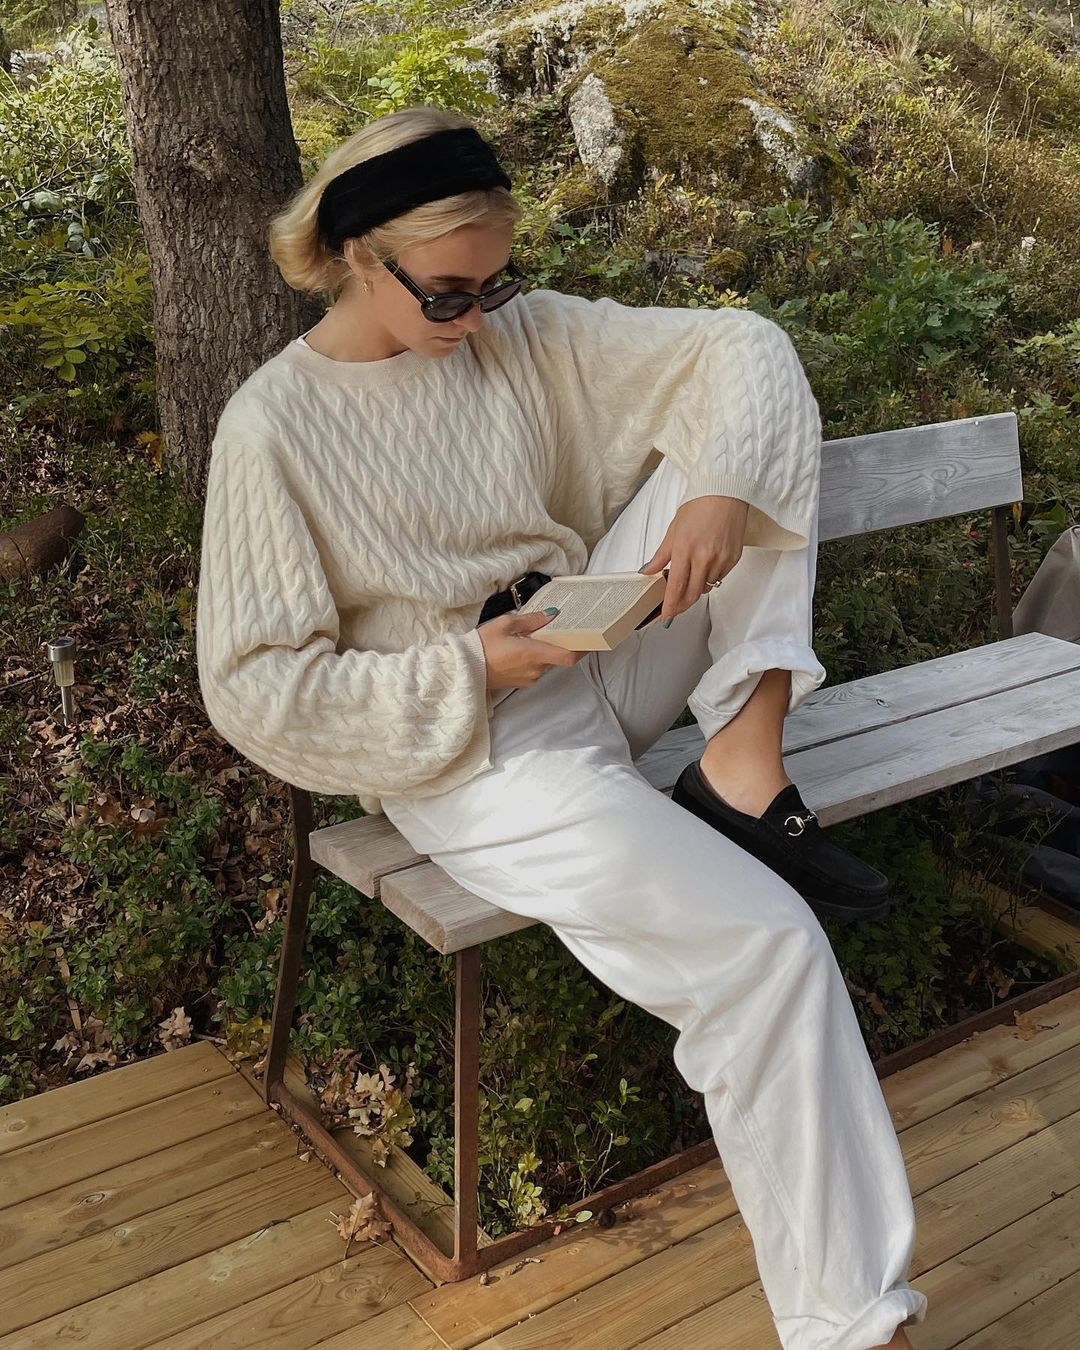 fanny-ekstrand-toteme-cashmere-cable-knit-sweater-instagram